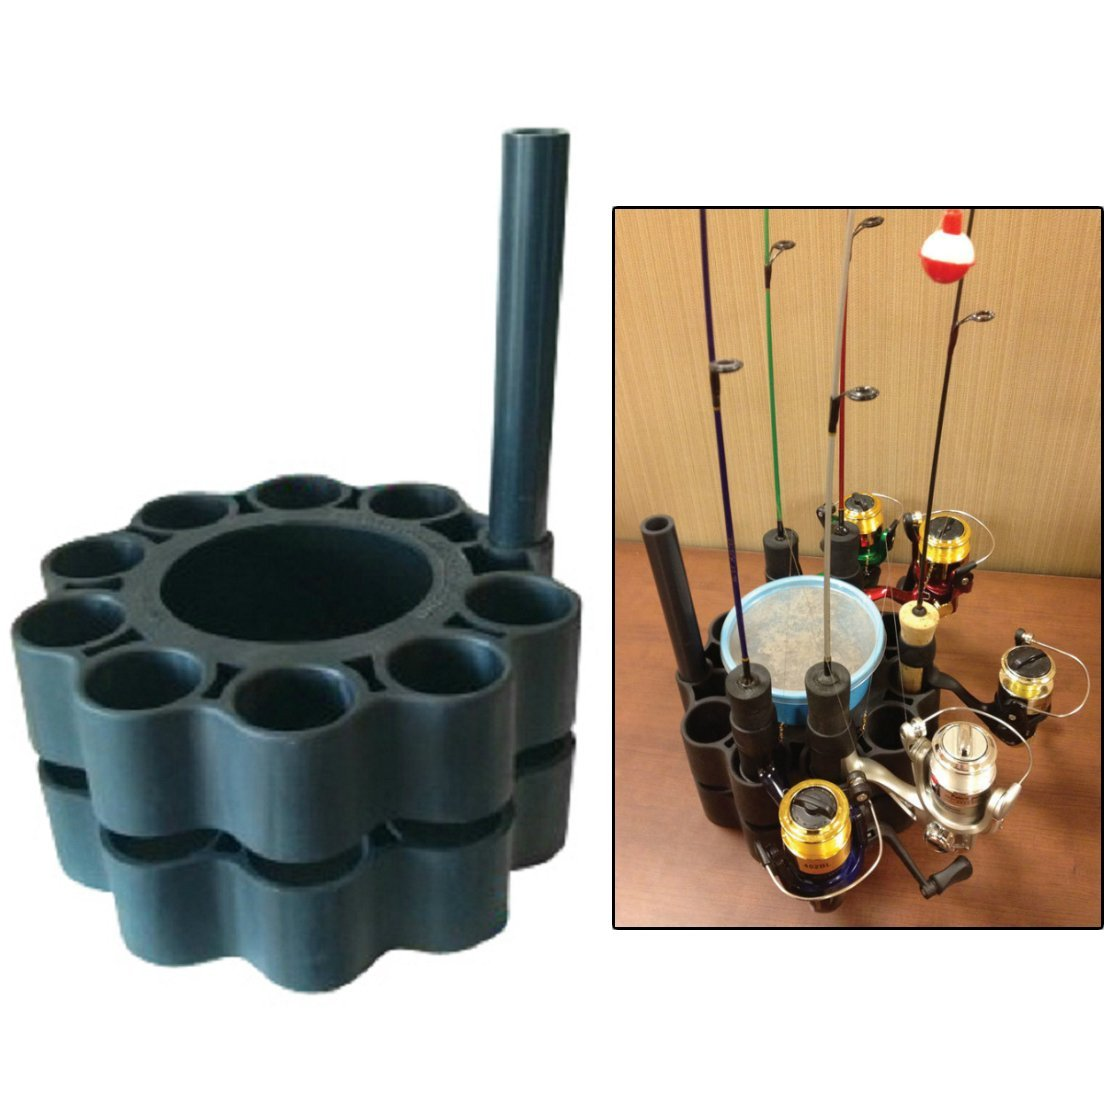 Ice Fishing Rod Retainer Holder Carrier for Multiple Poles by